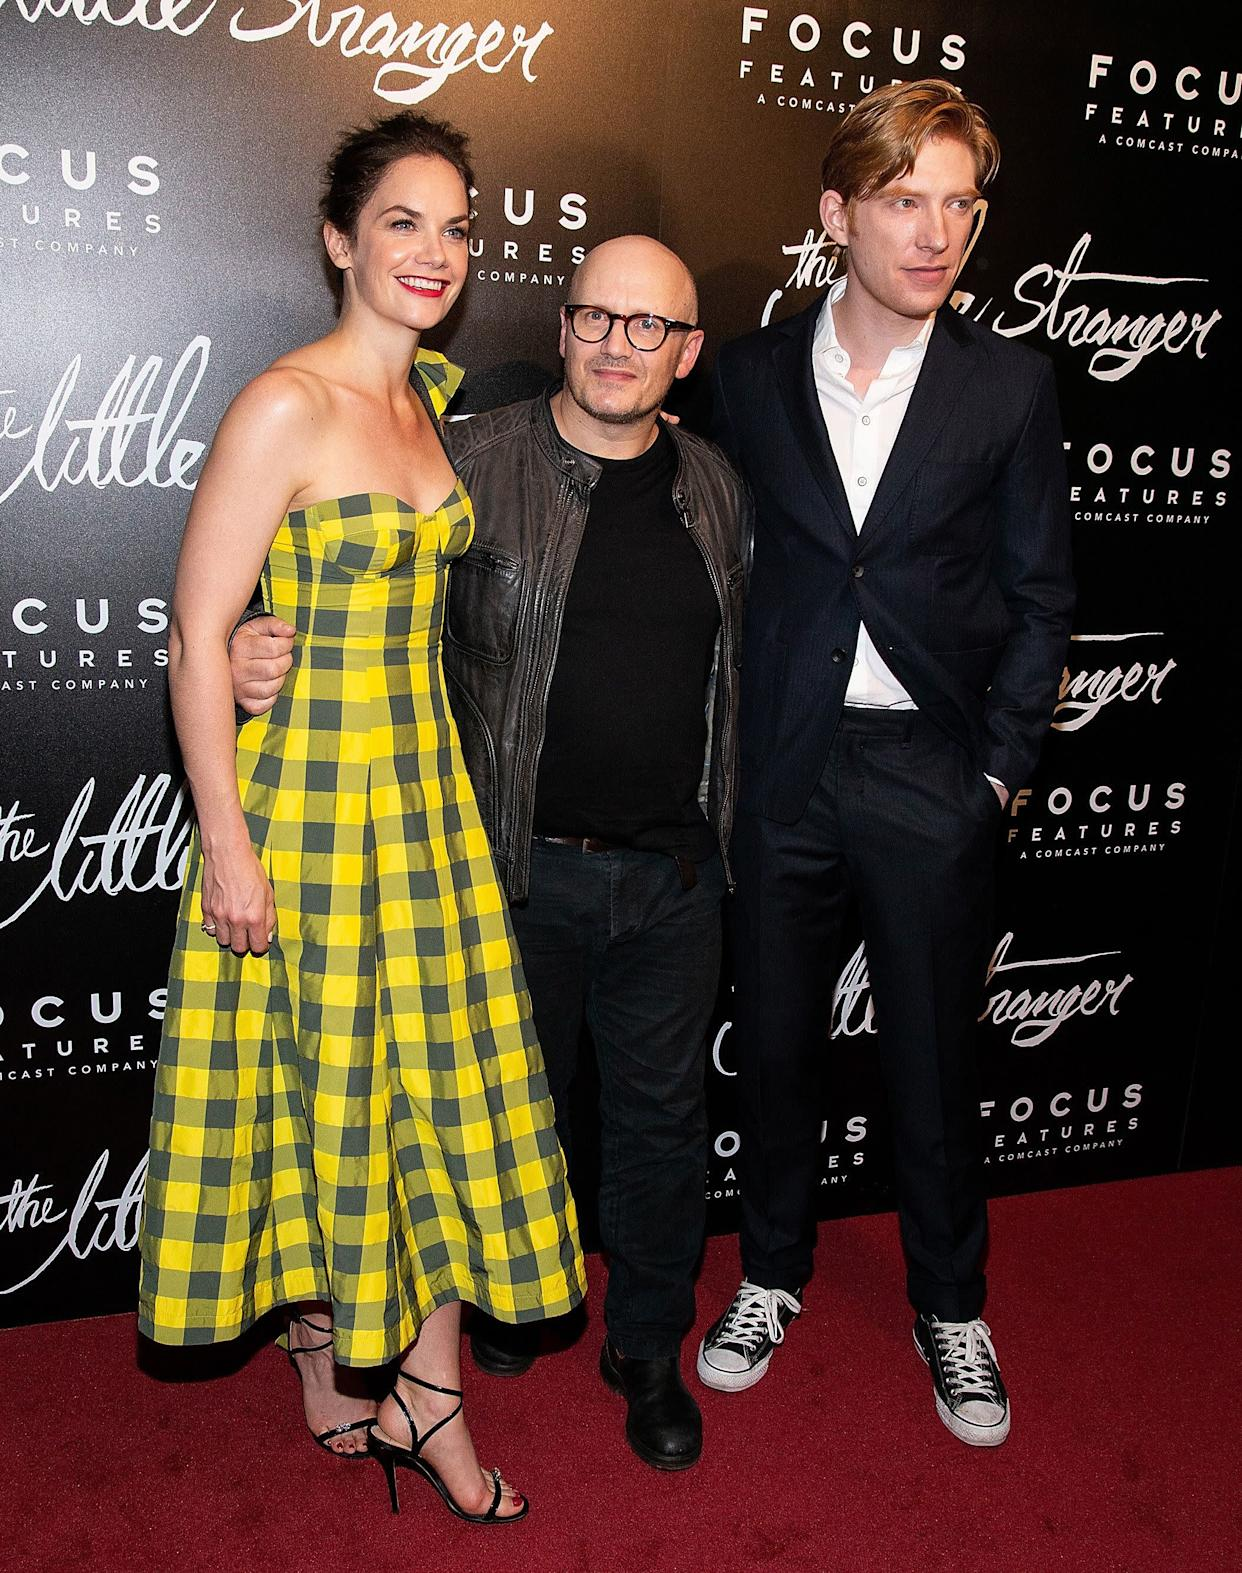 NEW YORK, NY - AUGUST 16: (L-R) Ruth Wilson, Lenny Abrahamson and Domhnall Gleeson attend 'The Little Stranger' New York Premiere at Metrograph on August 16, 2018 in New York City. (Photo by Paul Zimmerman/WireImage)